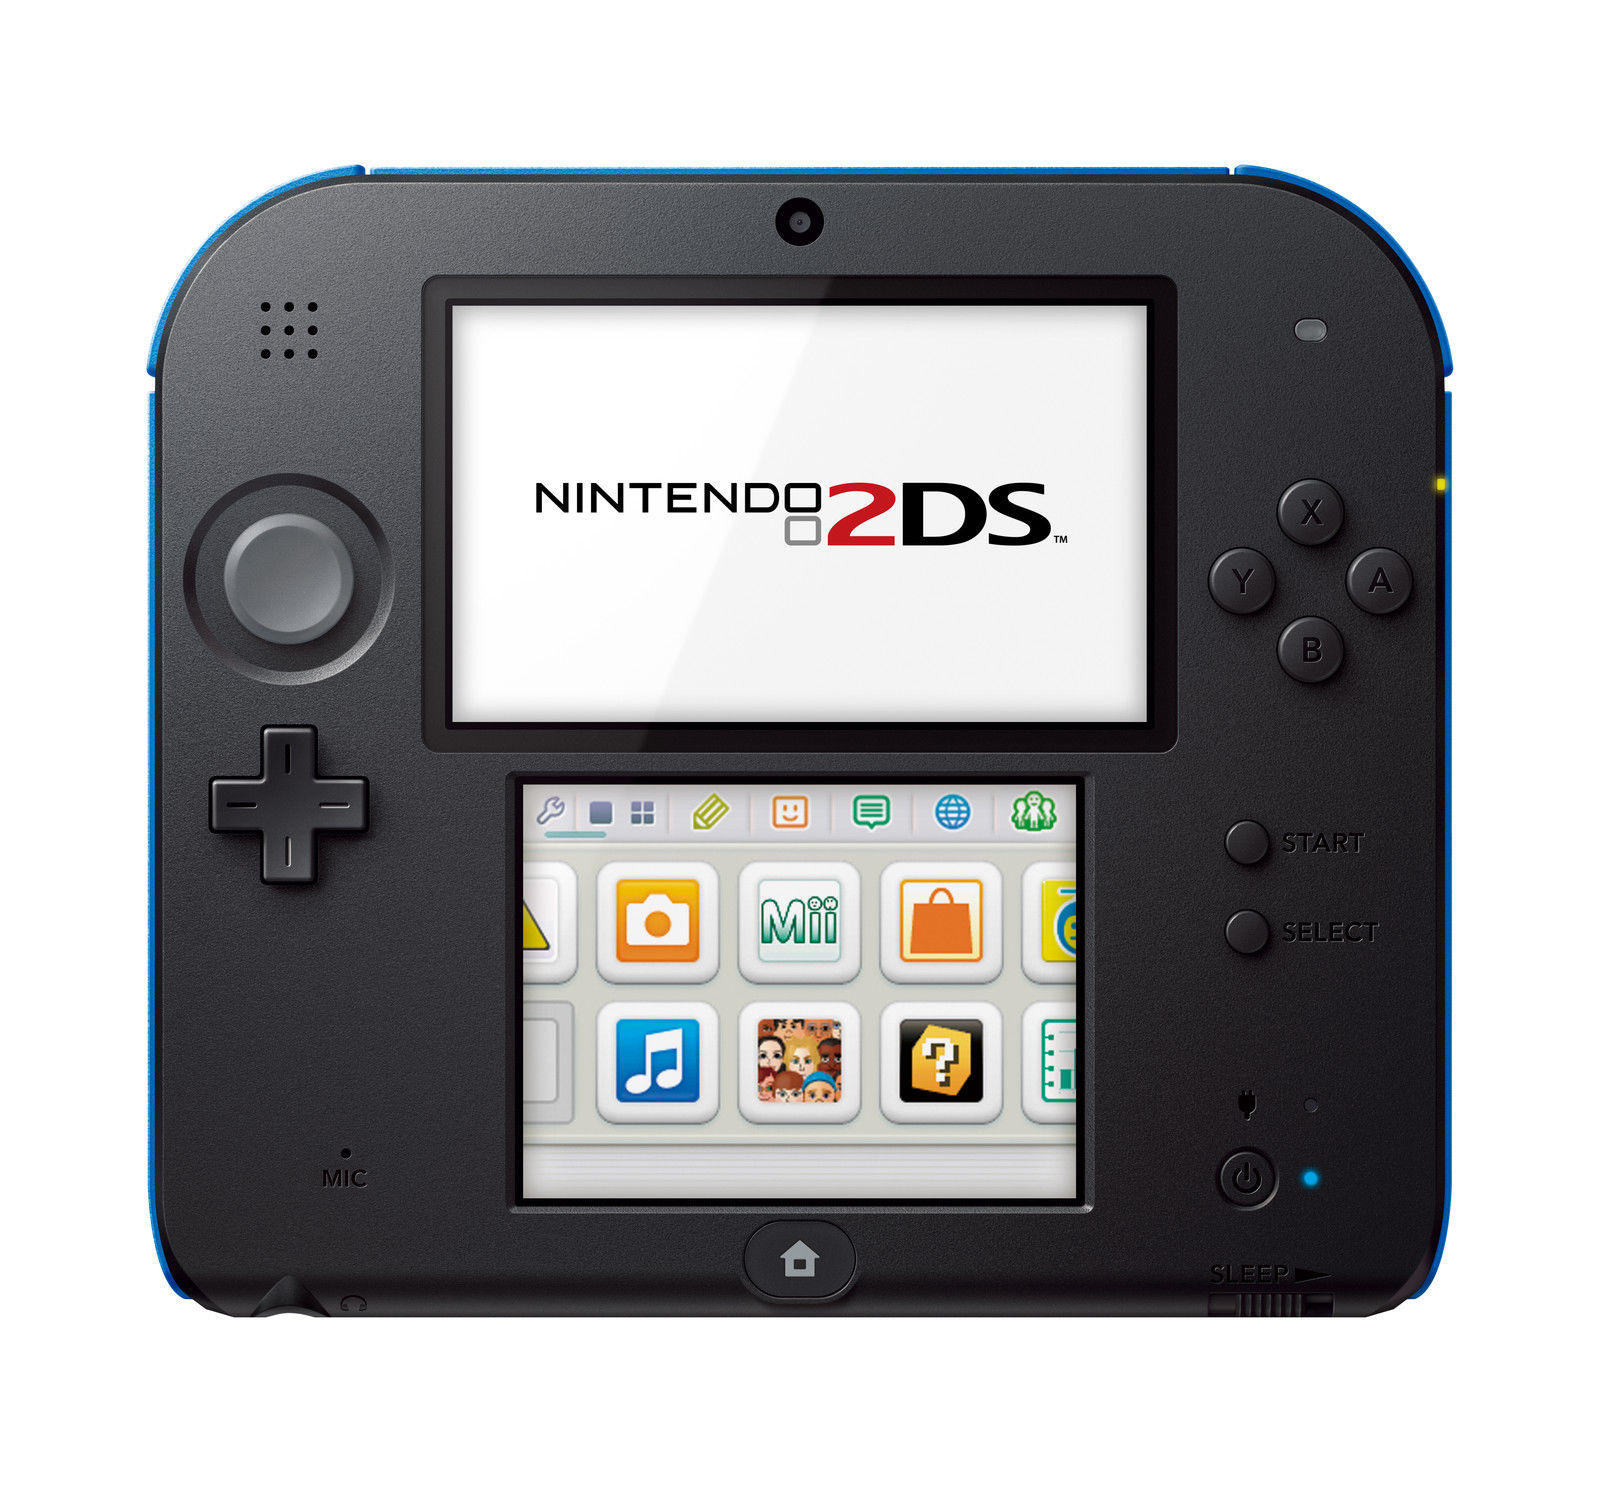 Nintendo 2DS *FACTORY REFURBISHED BY NINTENDO